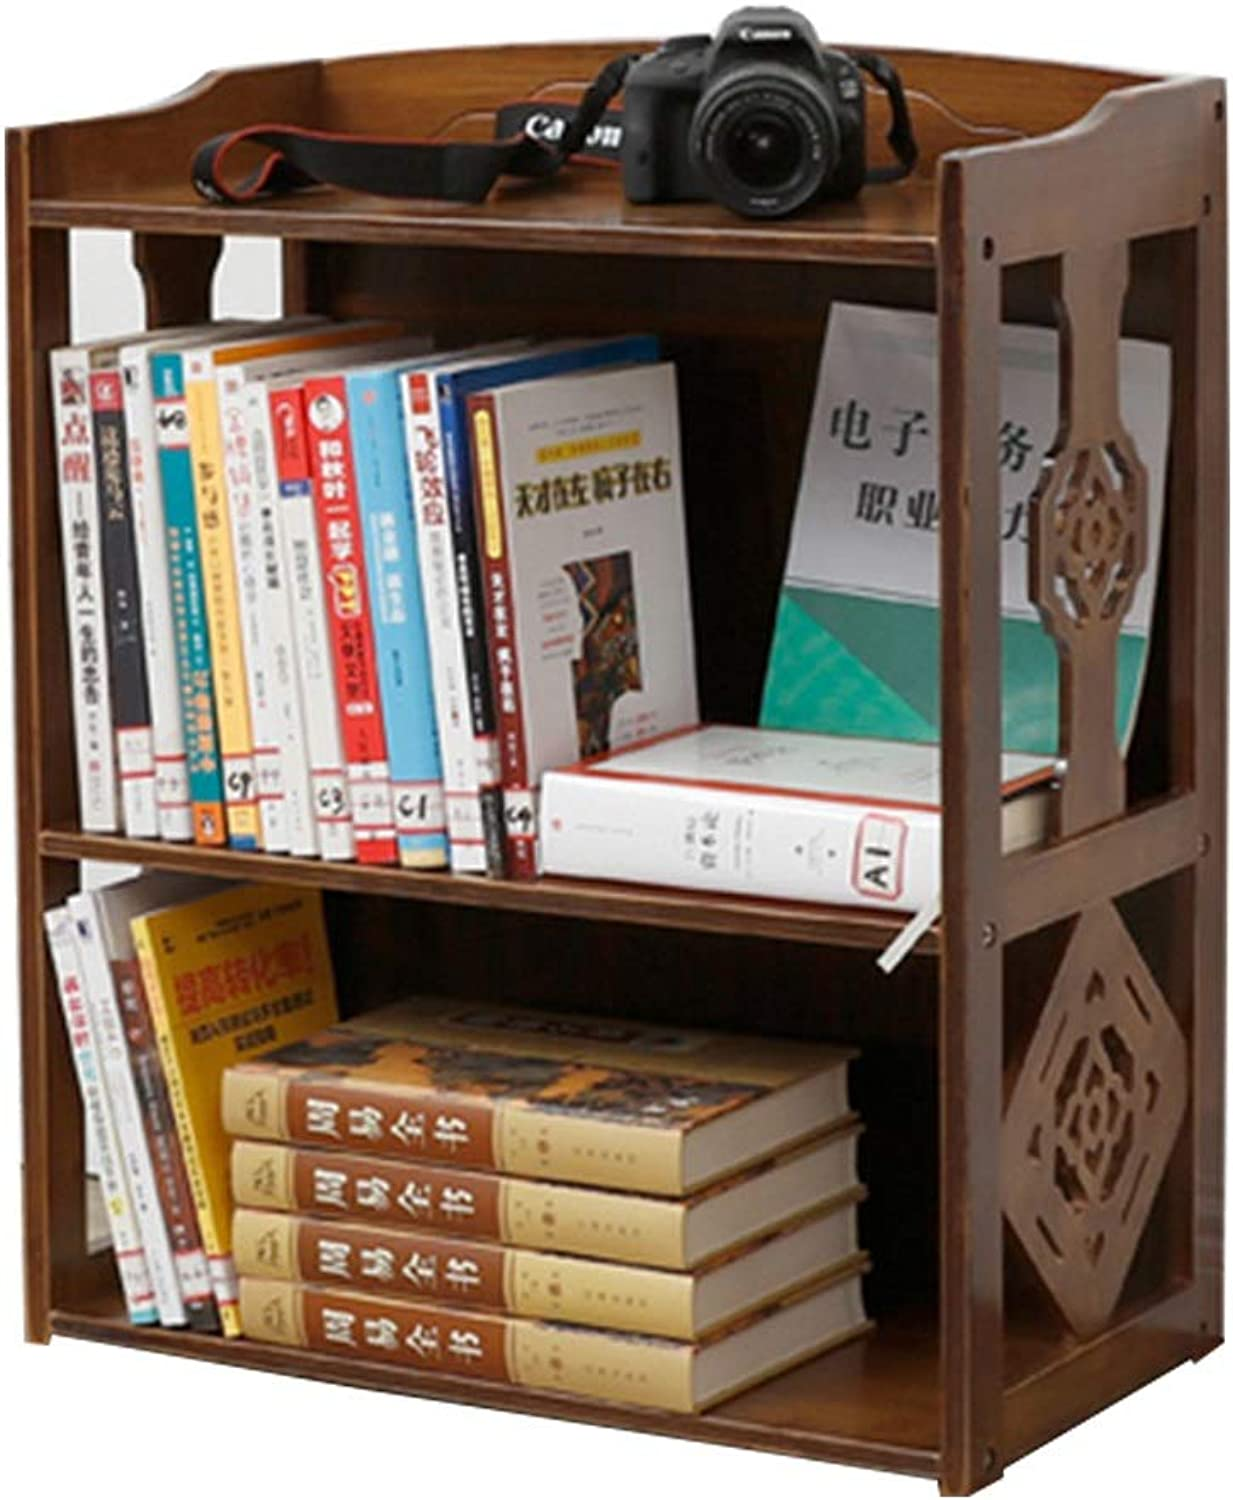 Bookshelves Bamboo Vintage Bookcase Racks Simple Student Bookshelf Living Room Bamboo Simple Bookshelf bookcases Furniture (color   Brown, Size   43x28x70cm)